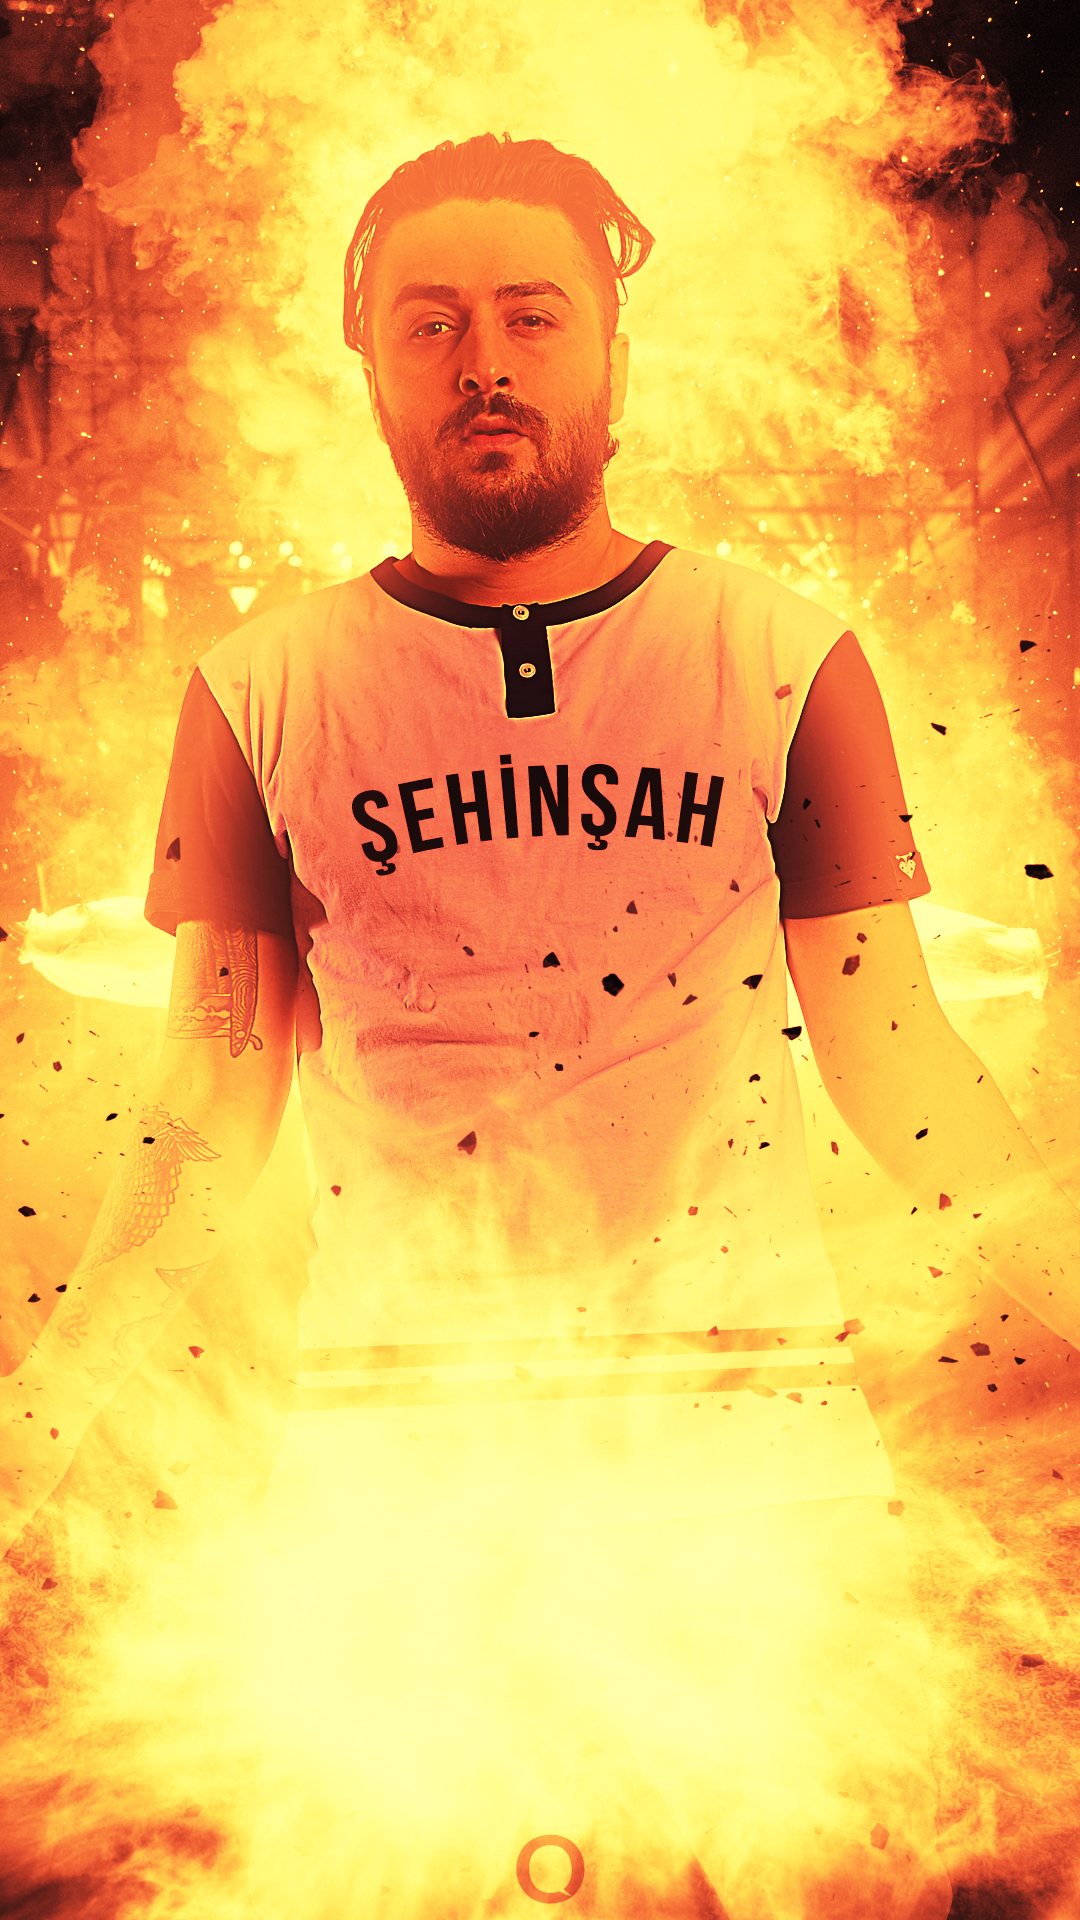 Sehinsah Turkish Rapper   Mobile Wallpaper   Rap RoyaltyCom 1080x1920